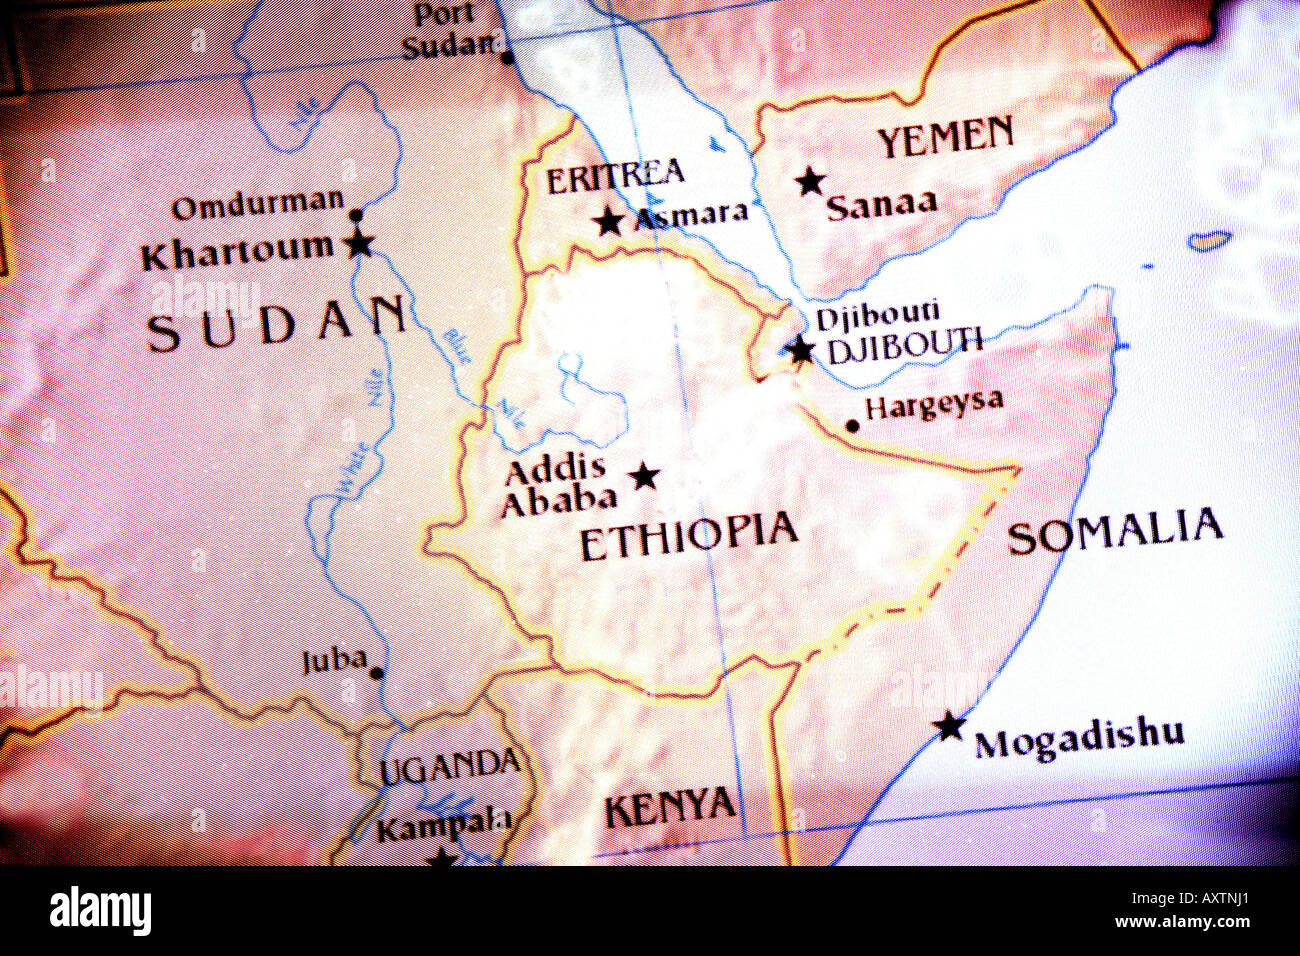 Current Map Of Africa.Current Map Showing The Countries Of Sudan Ethiopia Kenya